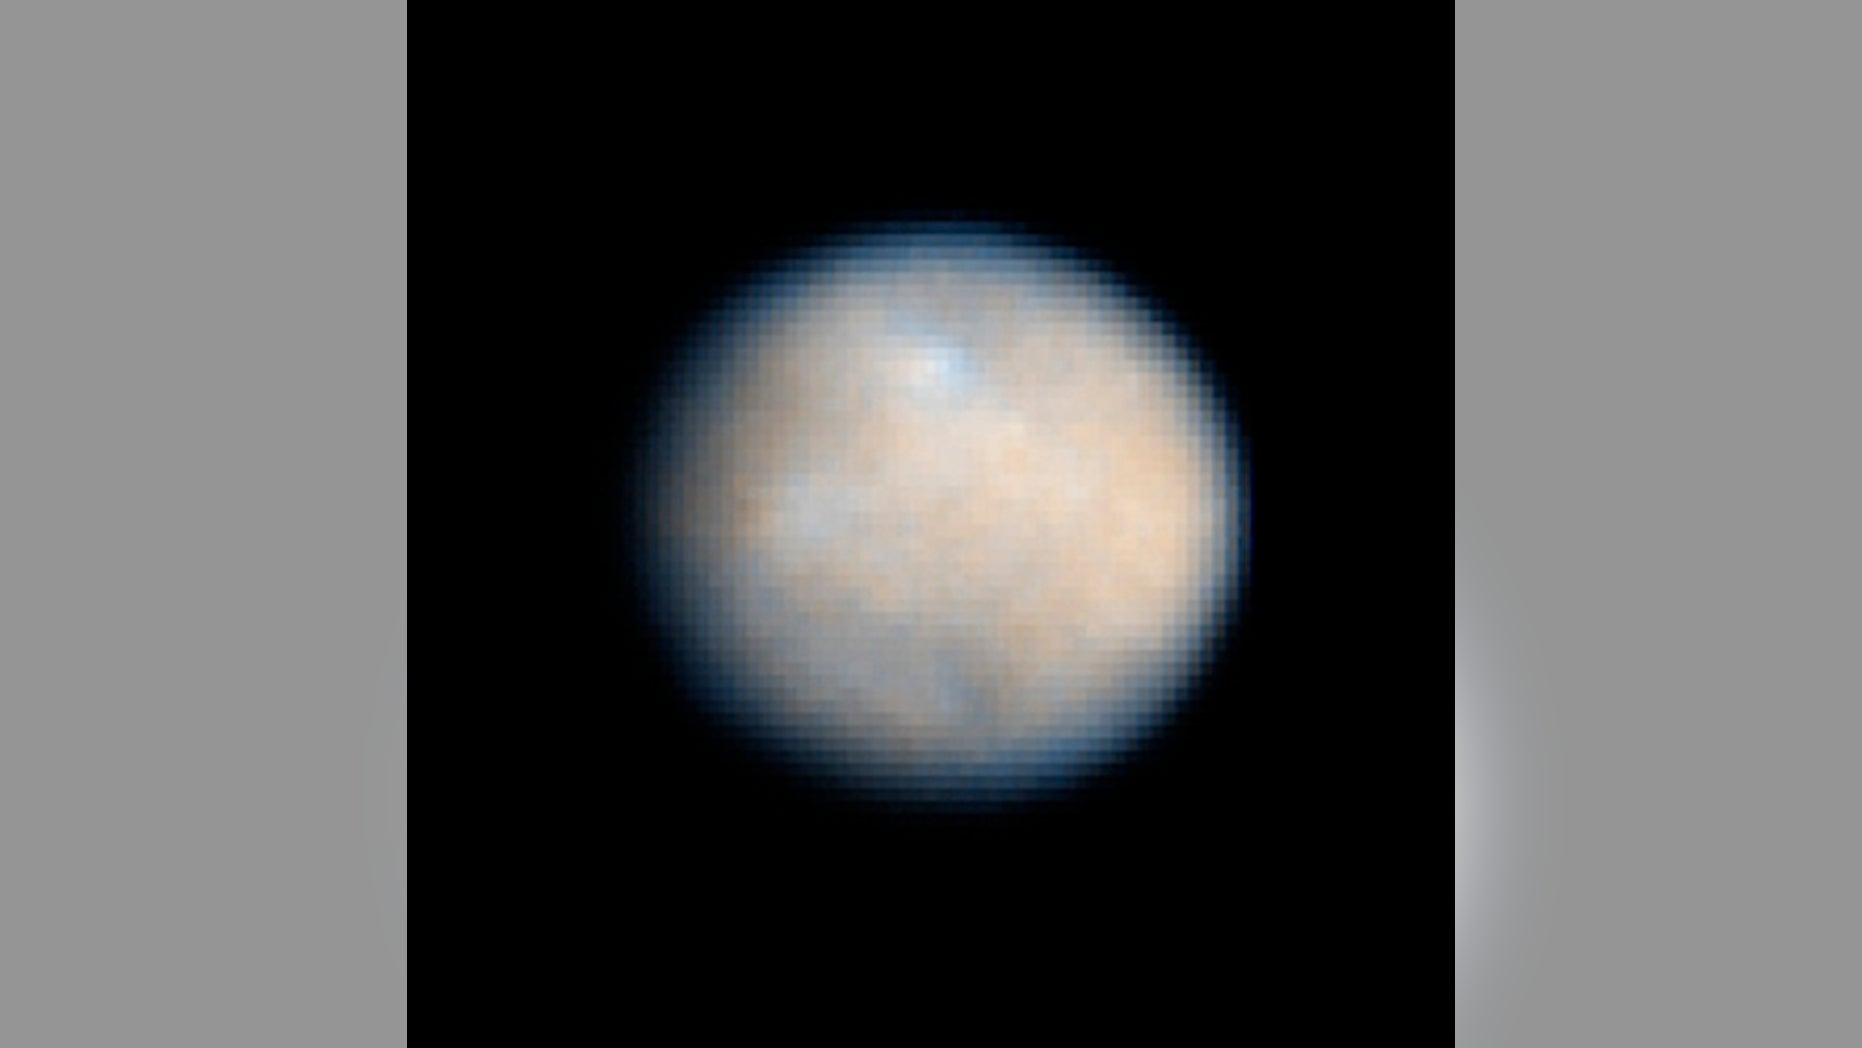 The dwarf planet Ceres, also the largest asteroid in the solar system, is seen here in an amazing view from the Hubble Space Telescope. In March 2015, NASA's Dawn spacecraft is expected to enter orbit around Ceres to study the object like never